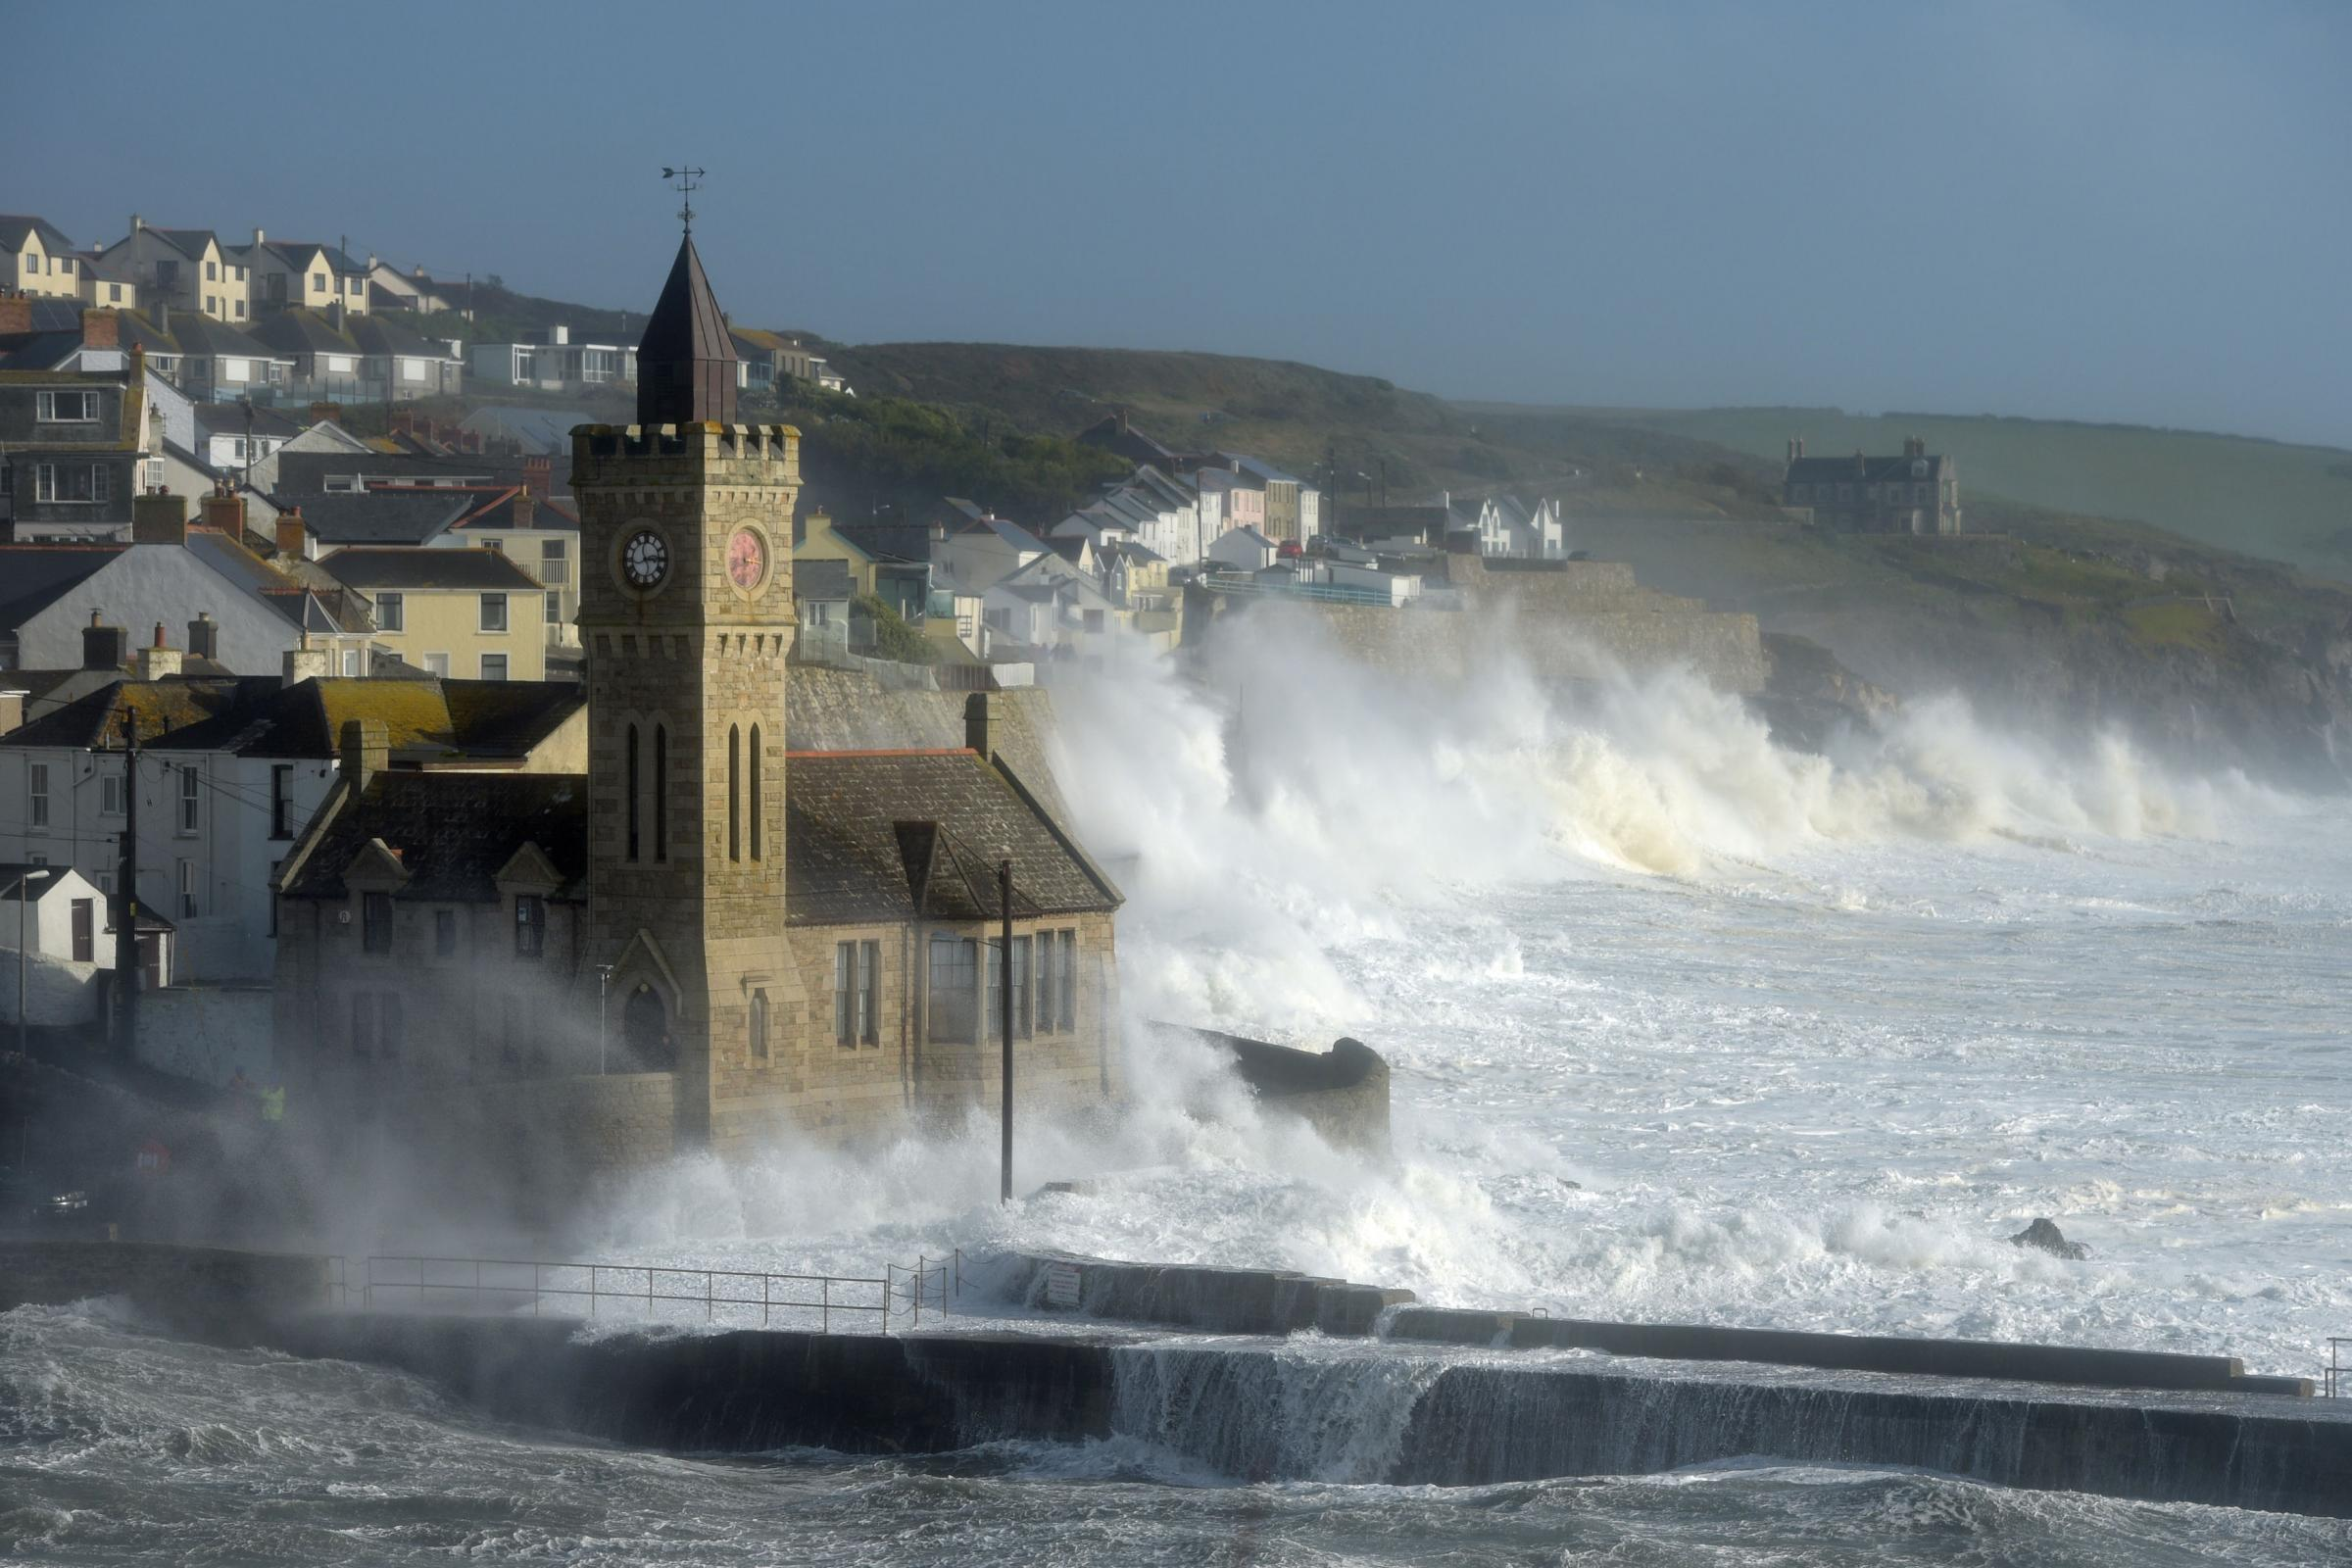 Warning issued for 'extremely dangerous' sea conditions and huge waves in Cornwall